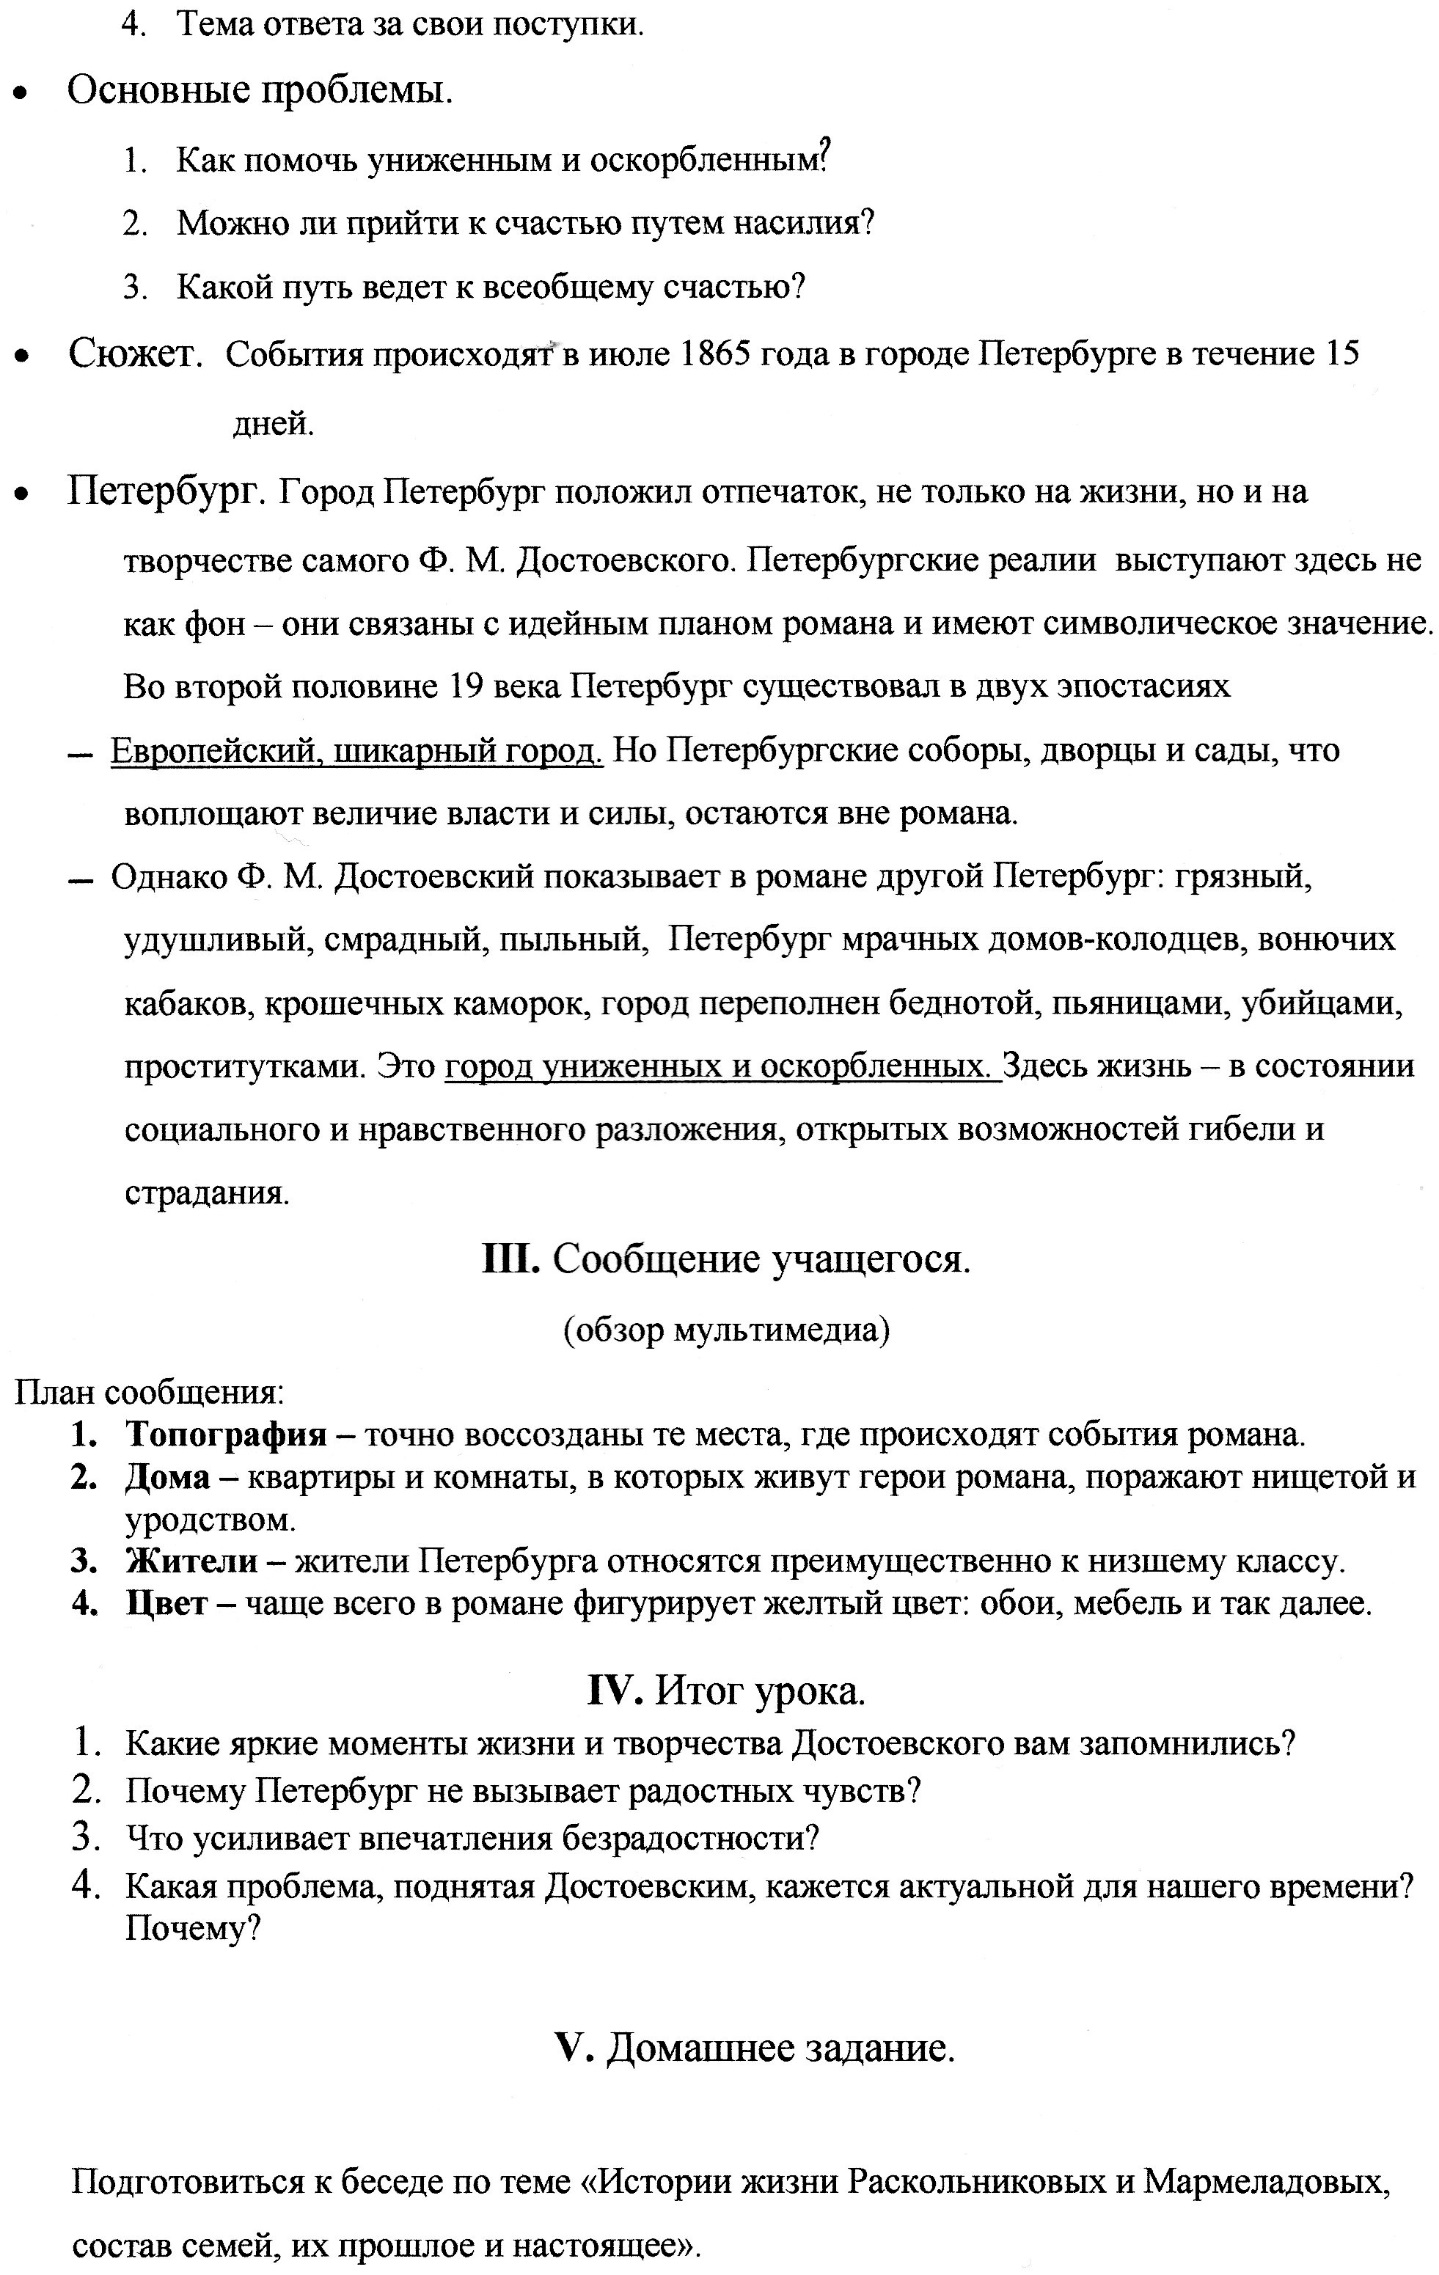 C:\Users\дом\Pictures\img012.jpg